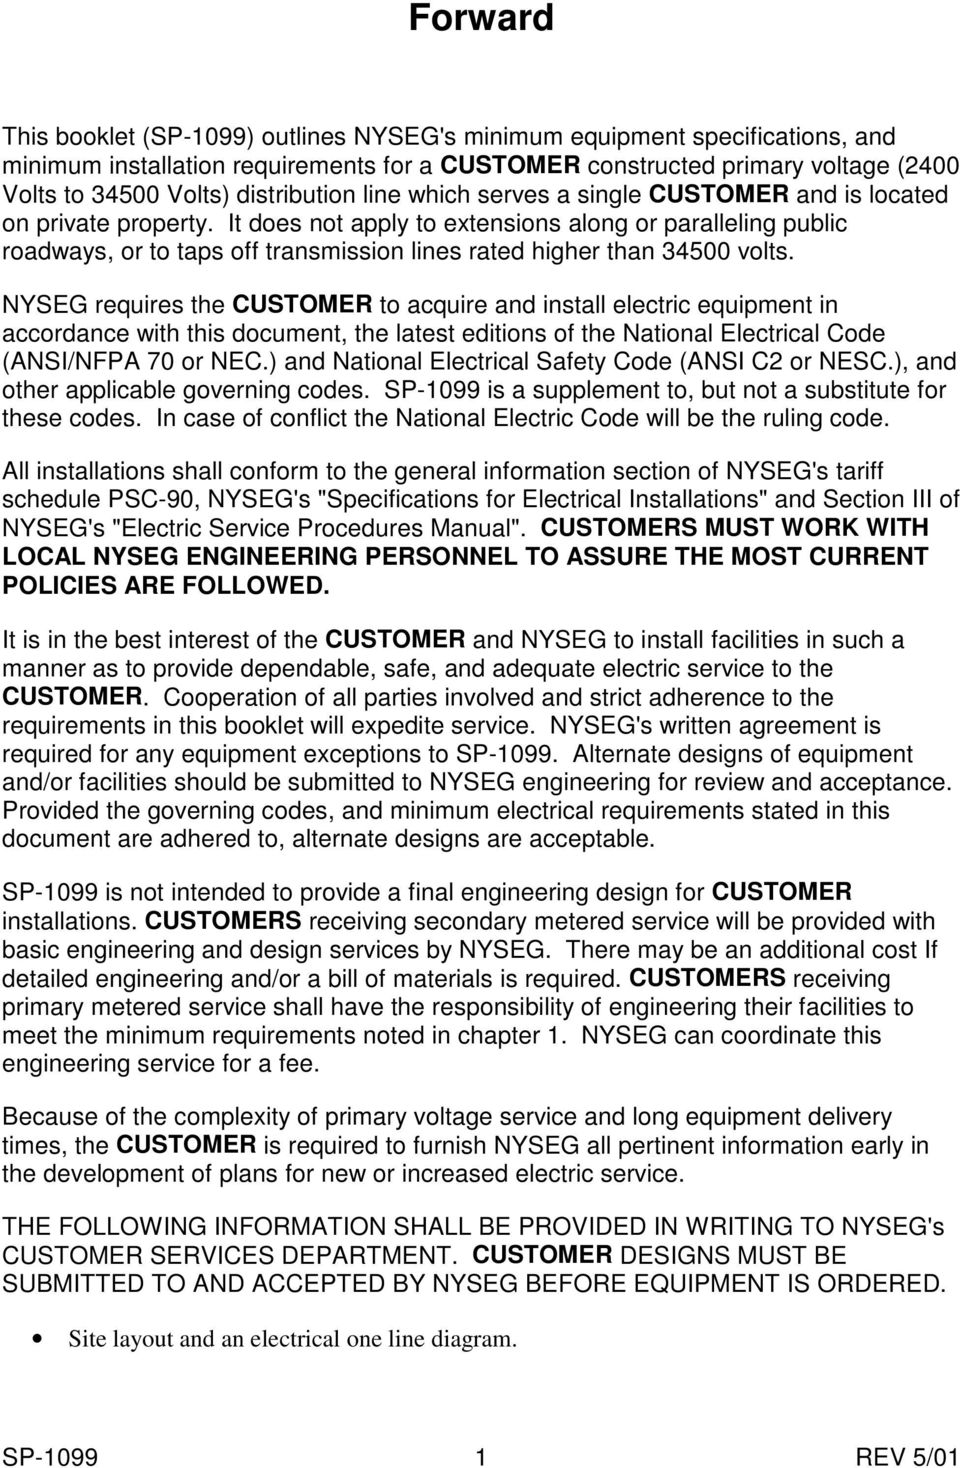 24 Kv To 345 Sp Pdf Section Three Electrical Installation It Does Not Apply Extensions Along Or Paralleling Public Roadways Taps Off